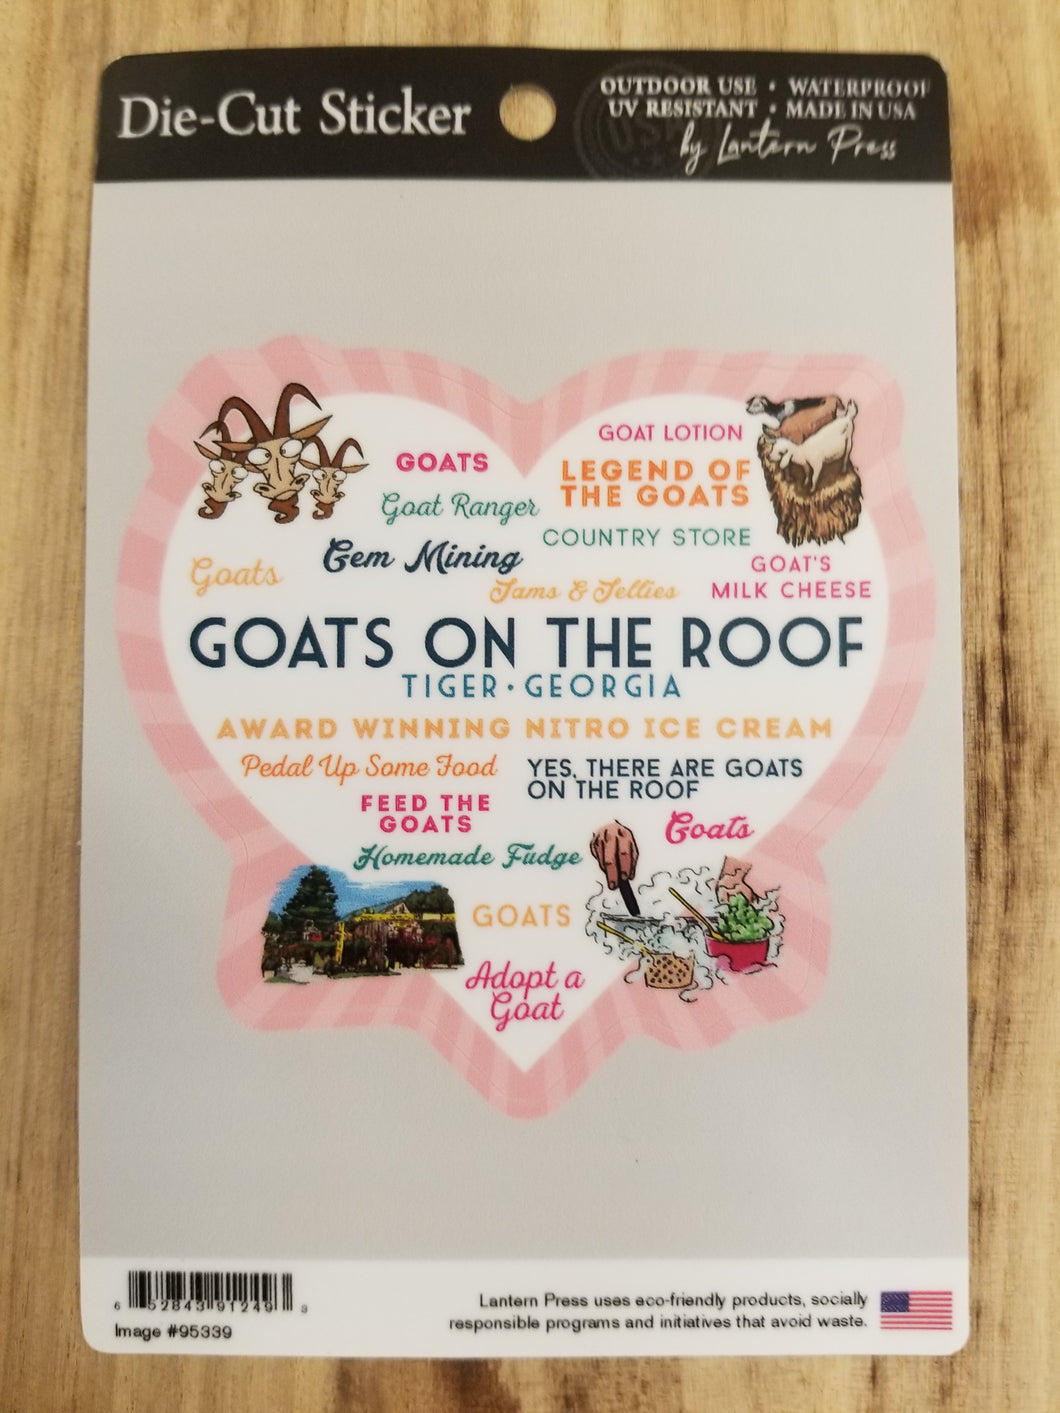 Die Cut Sticker Goats on the Roof Heart